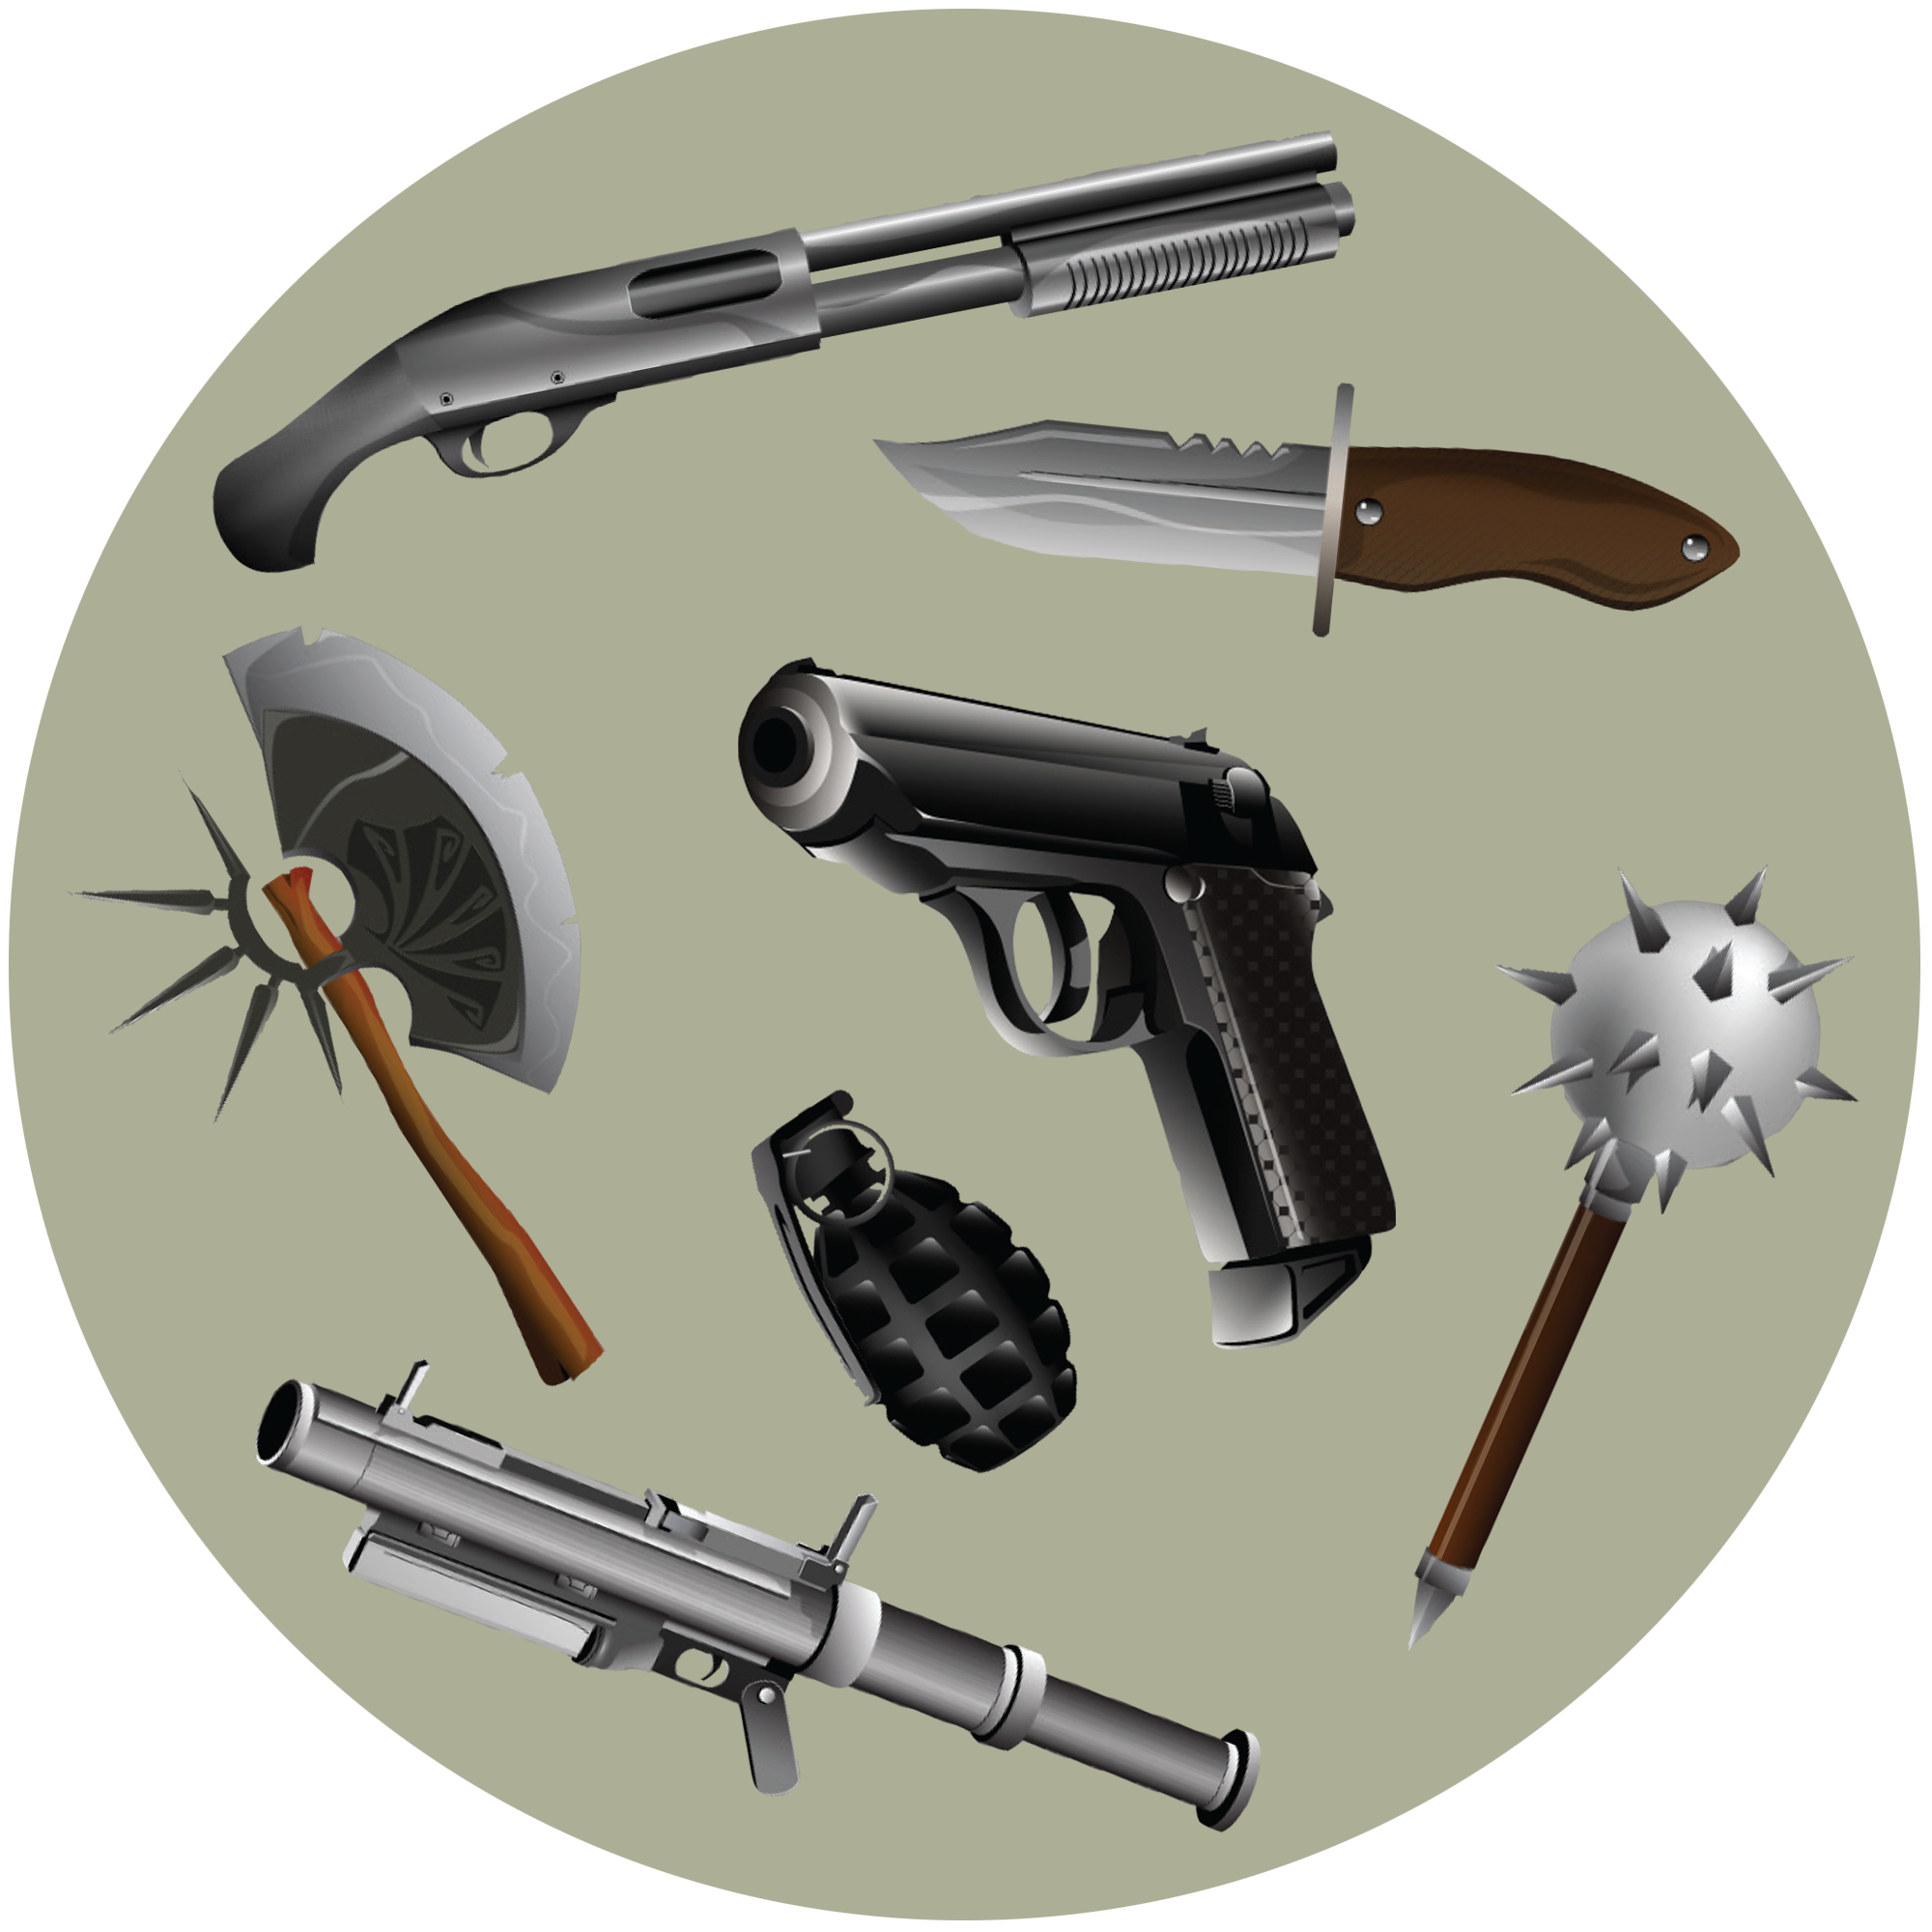 Symetrical drawing weapon. Vector weapons objects pinterest